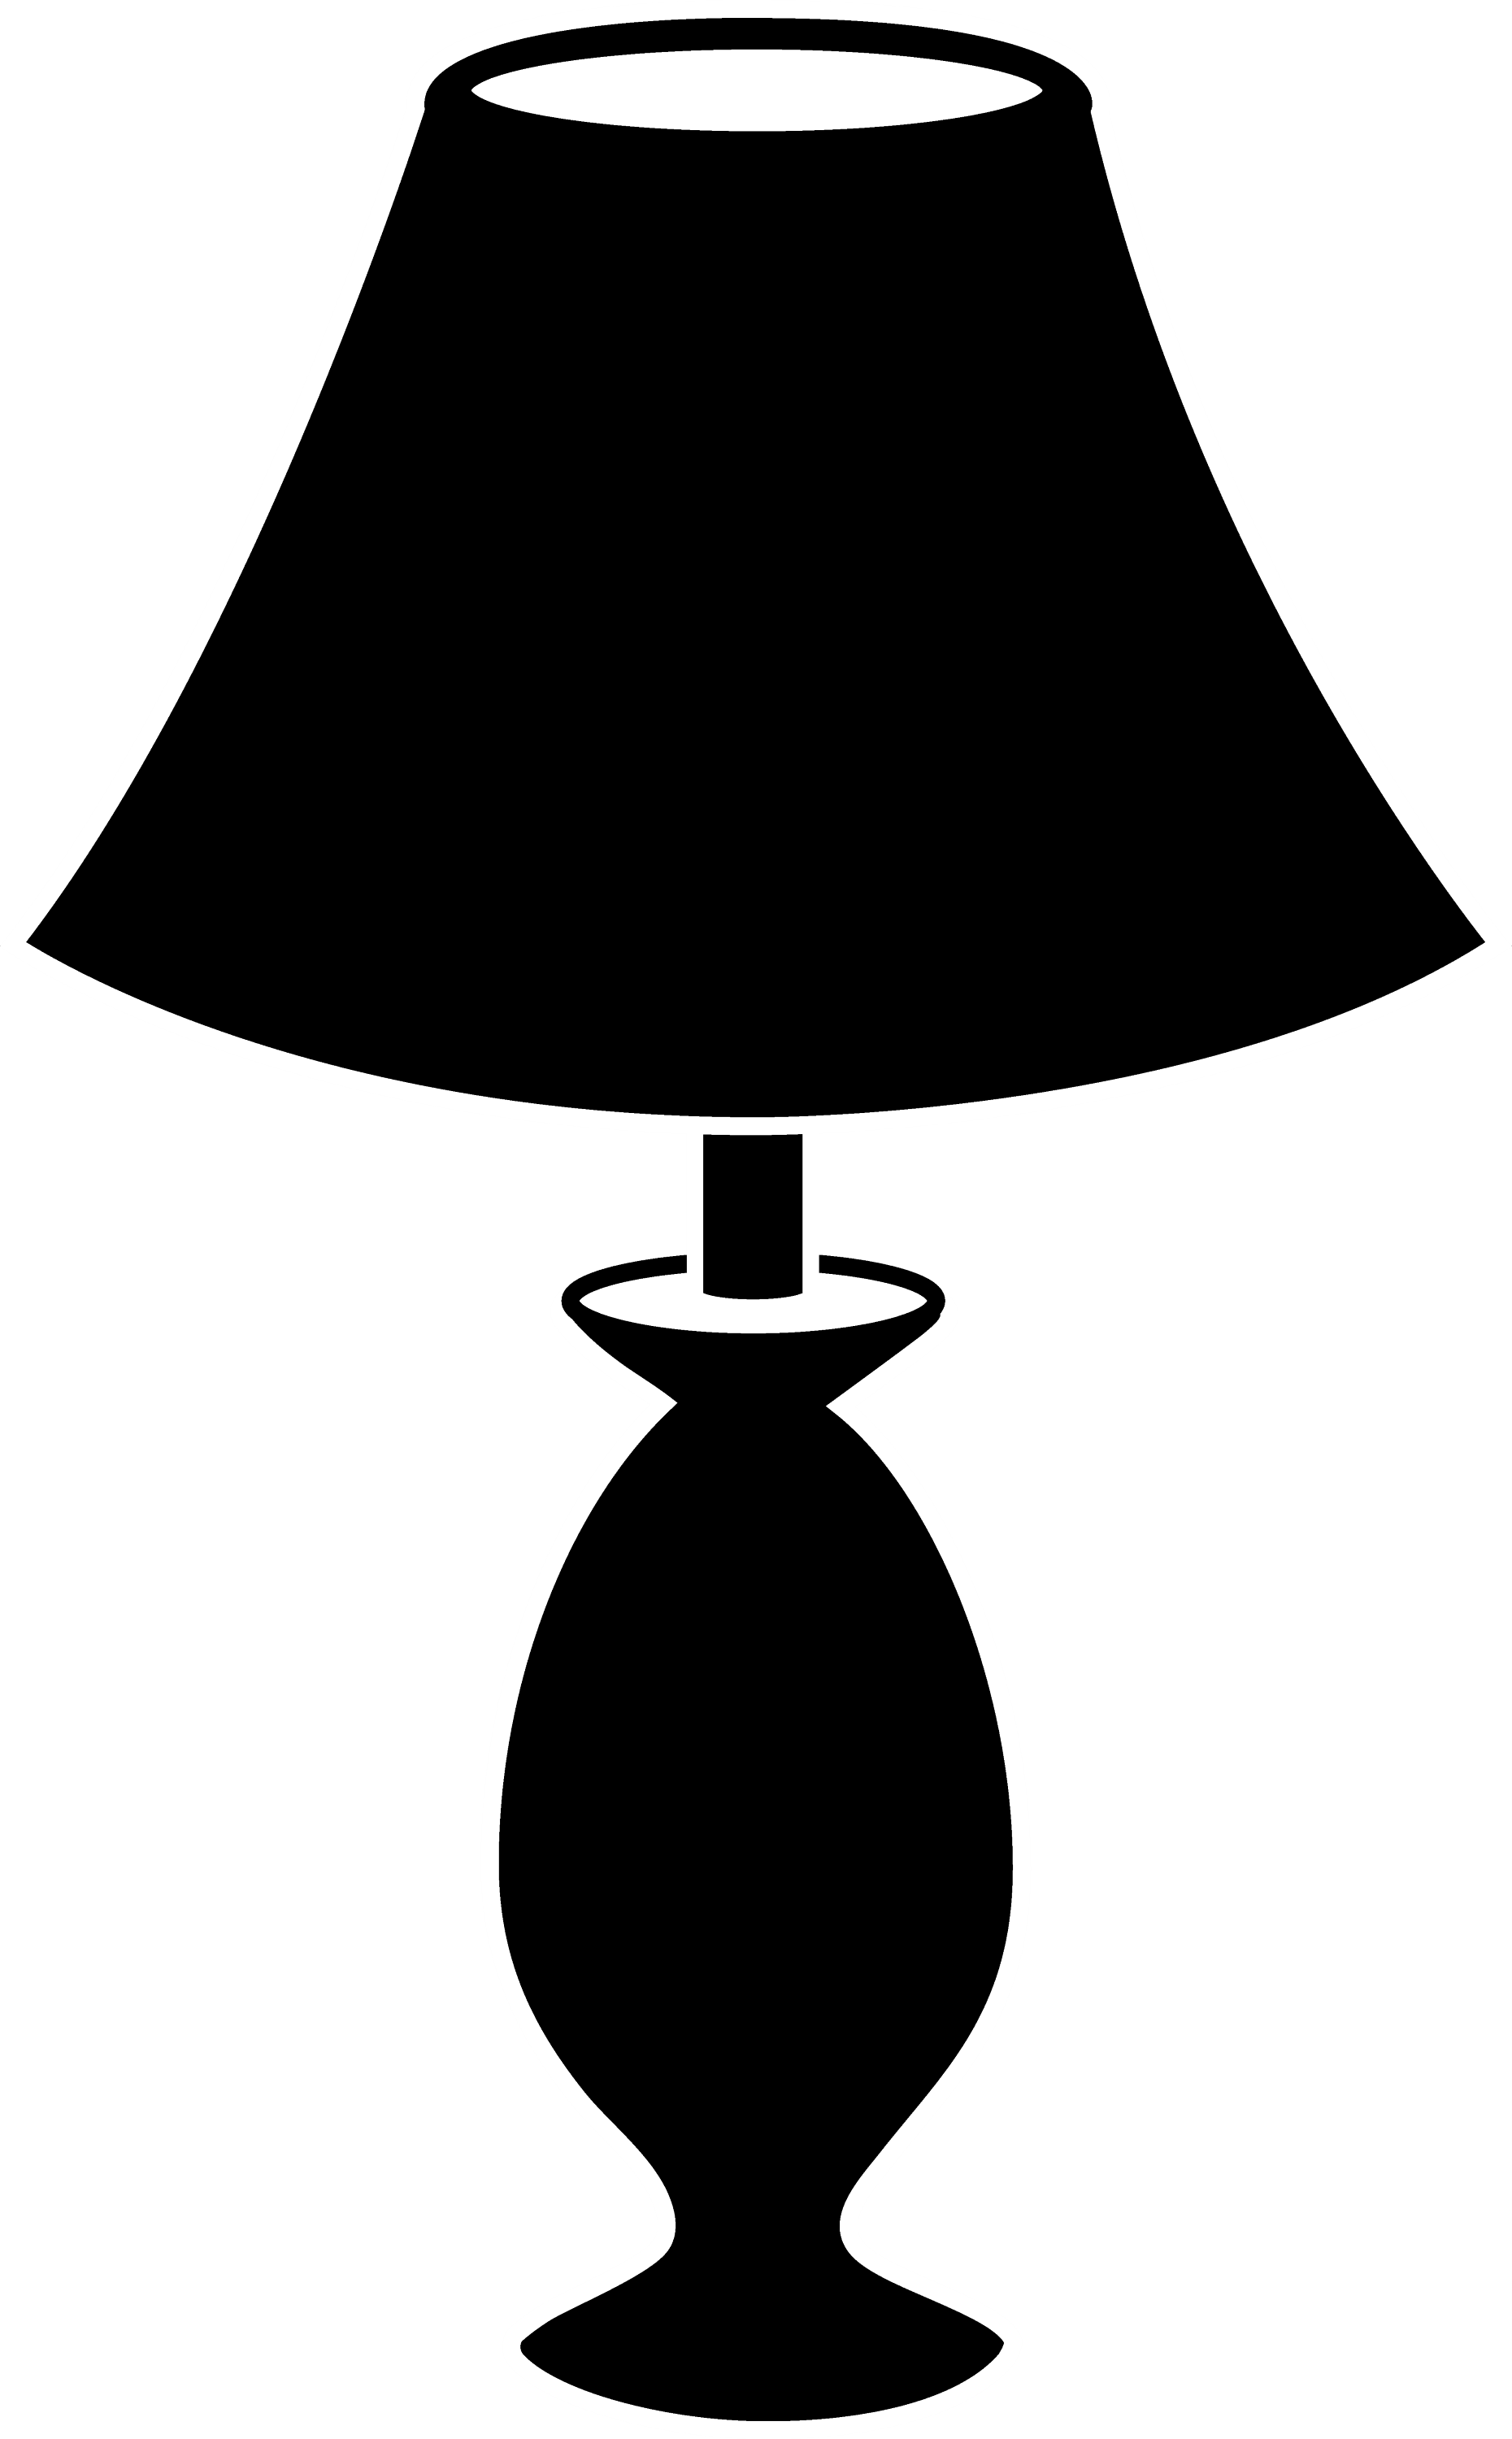 Black Lamp Silhouette - Free Clip Art for Lamp Shade Clip Art  110zmd